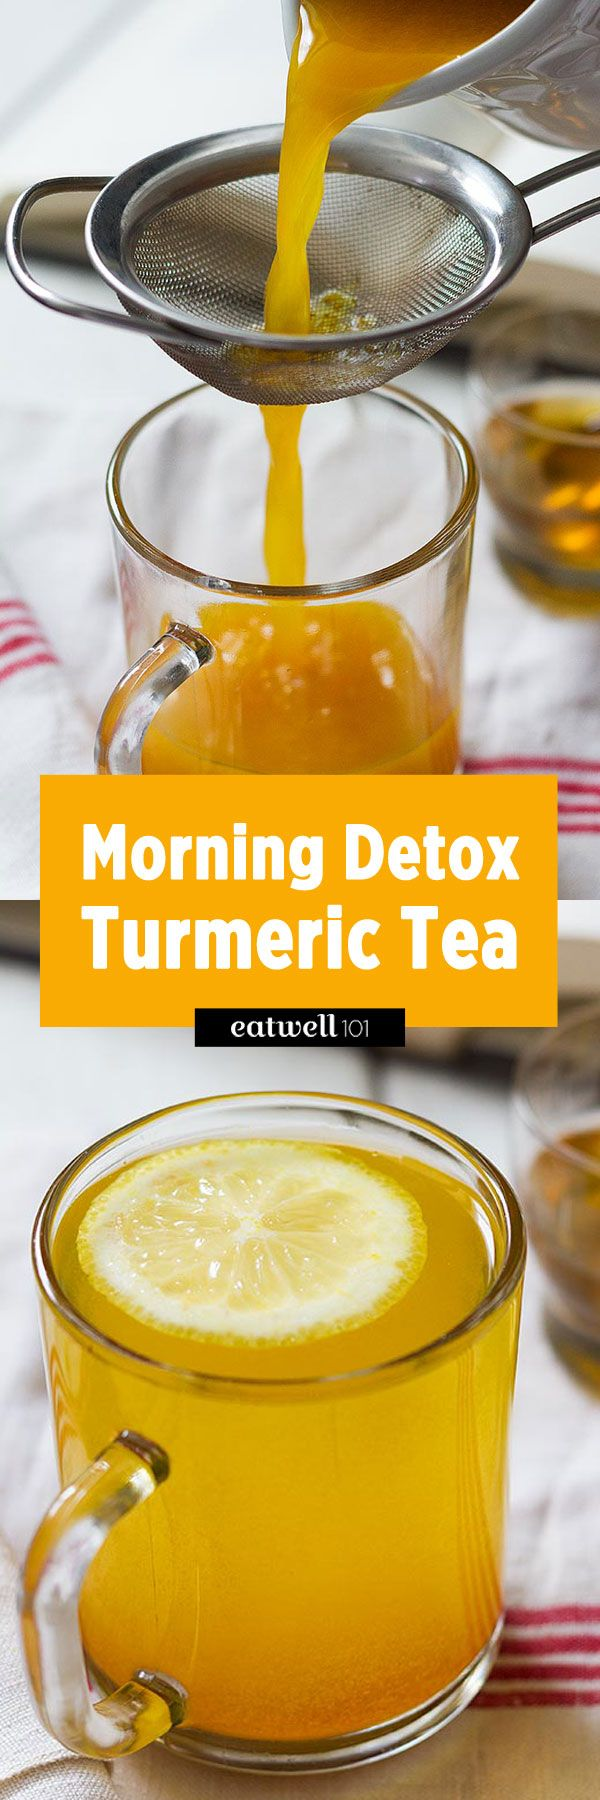 Start the day with this flavorful and healing lemon, ginger andturmeric detox tea. This turmeric tea is a combination of antioxidant and anti-inflammatory ingredients, with a fabulous flavor and l…